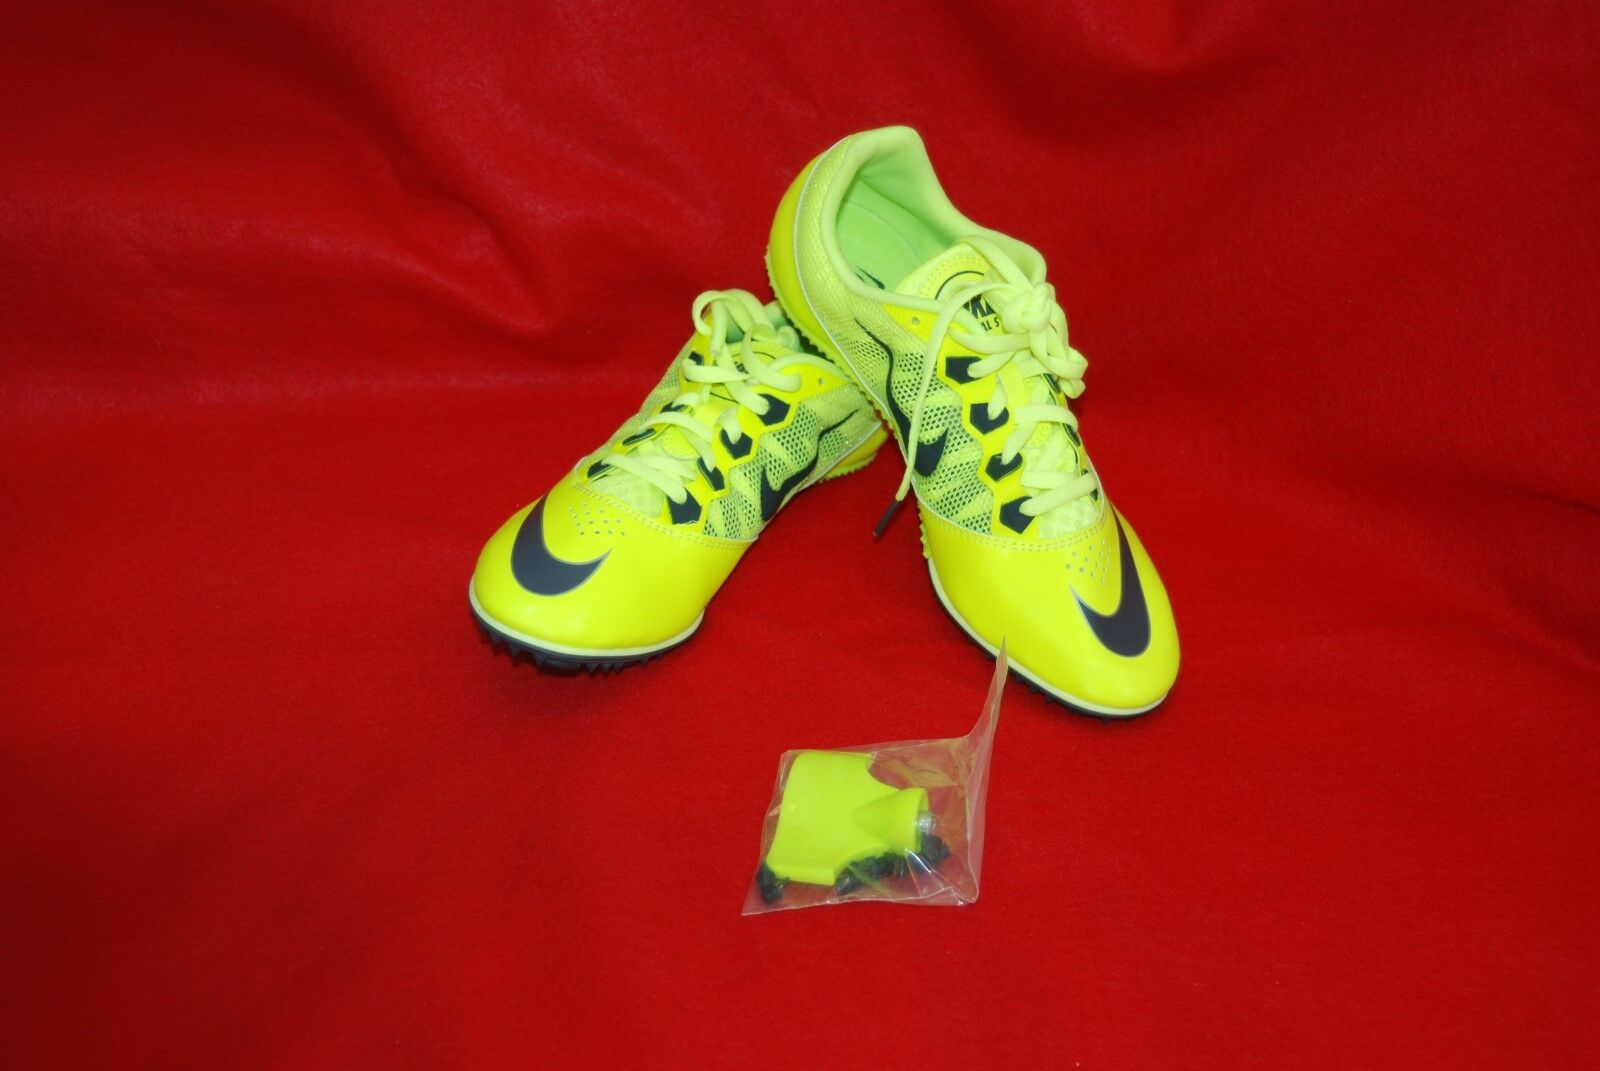 Nike Zoom Rival S 7 Men's Running Track Spikes  616313- 700 Comfortable